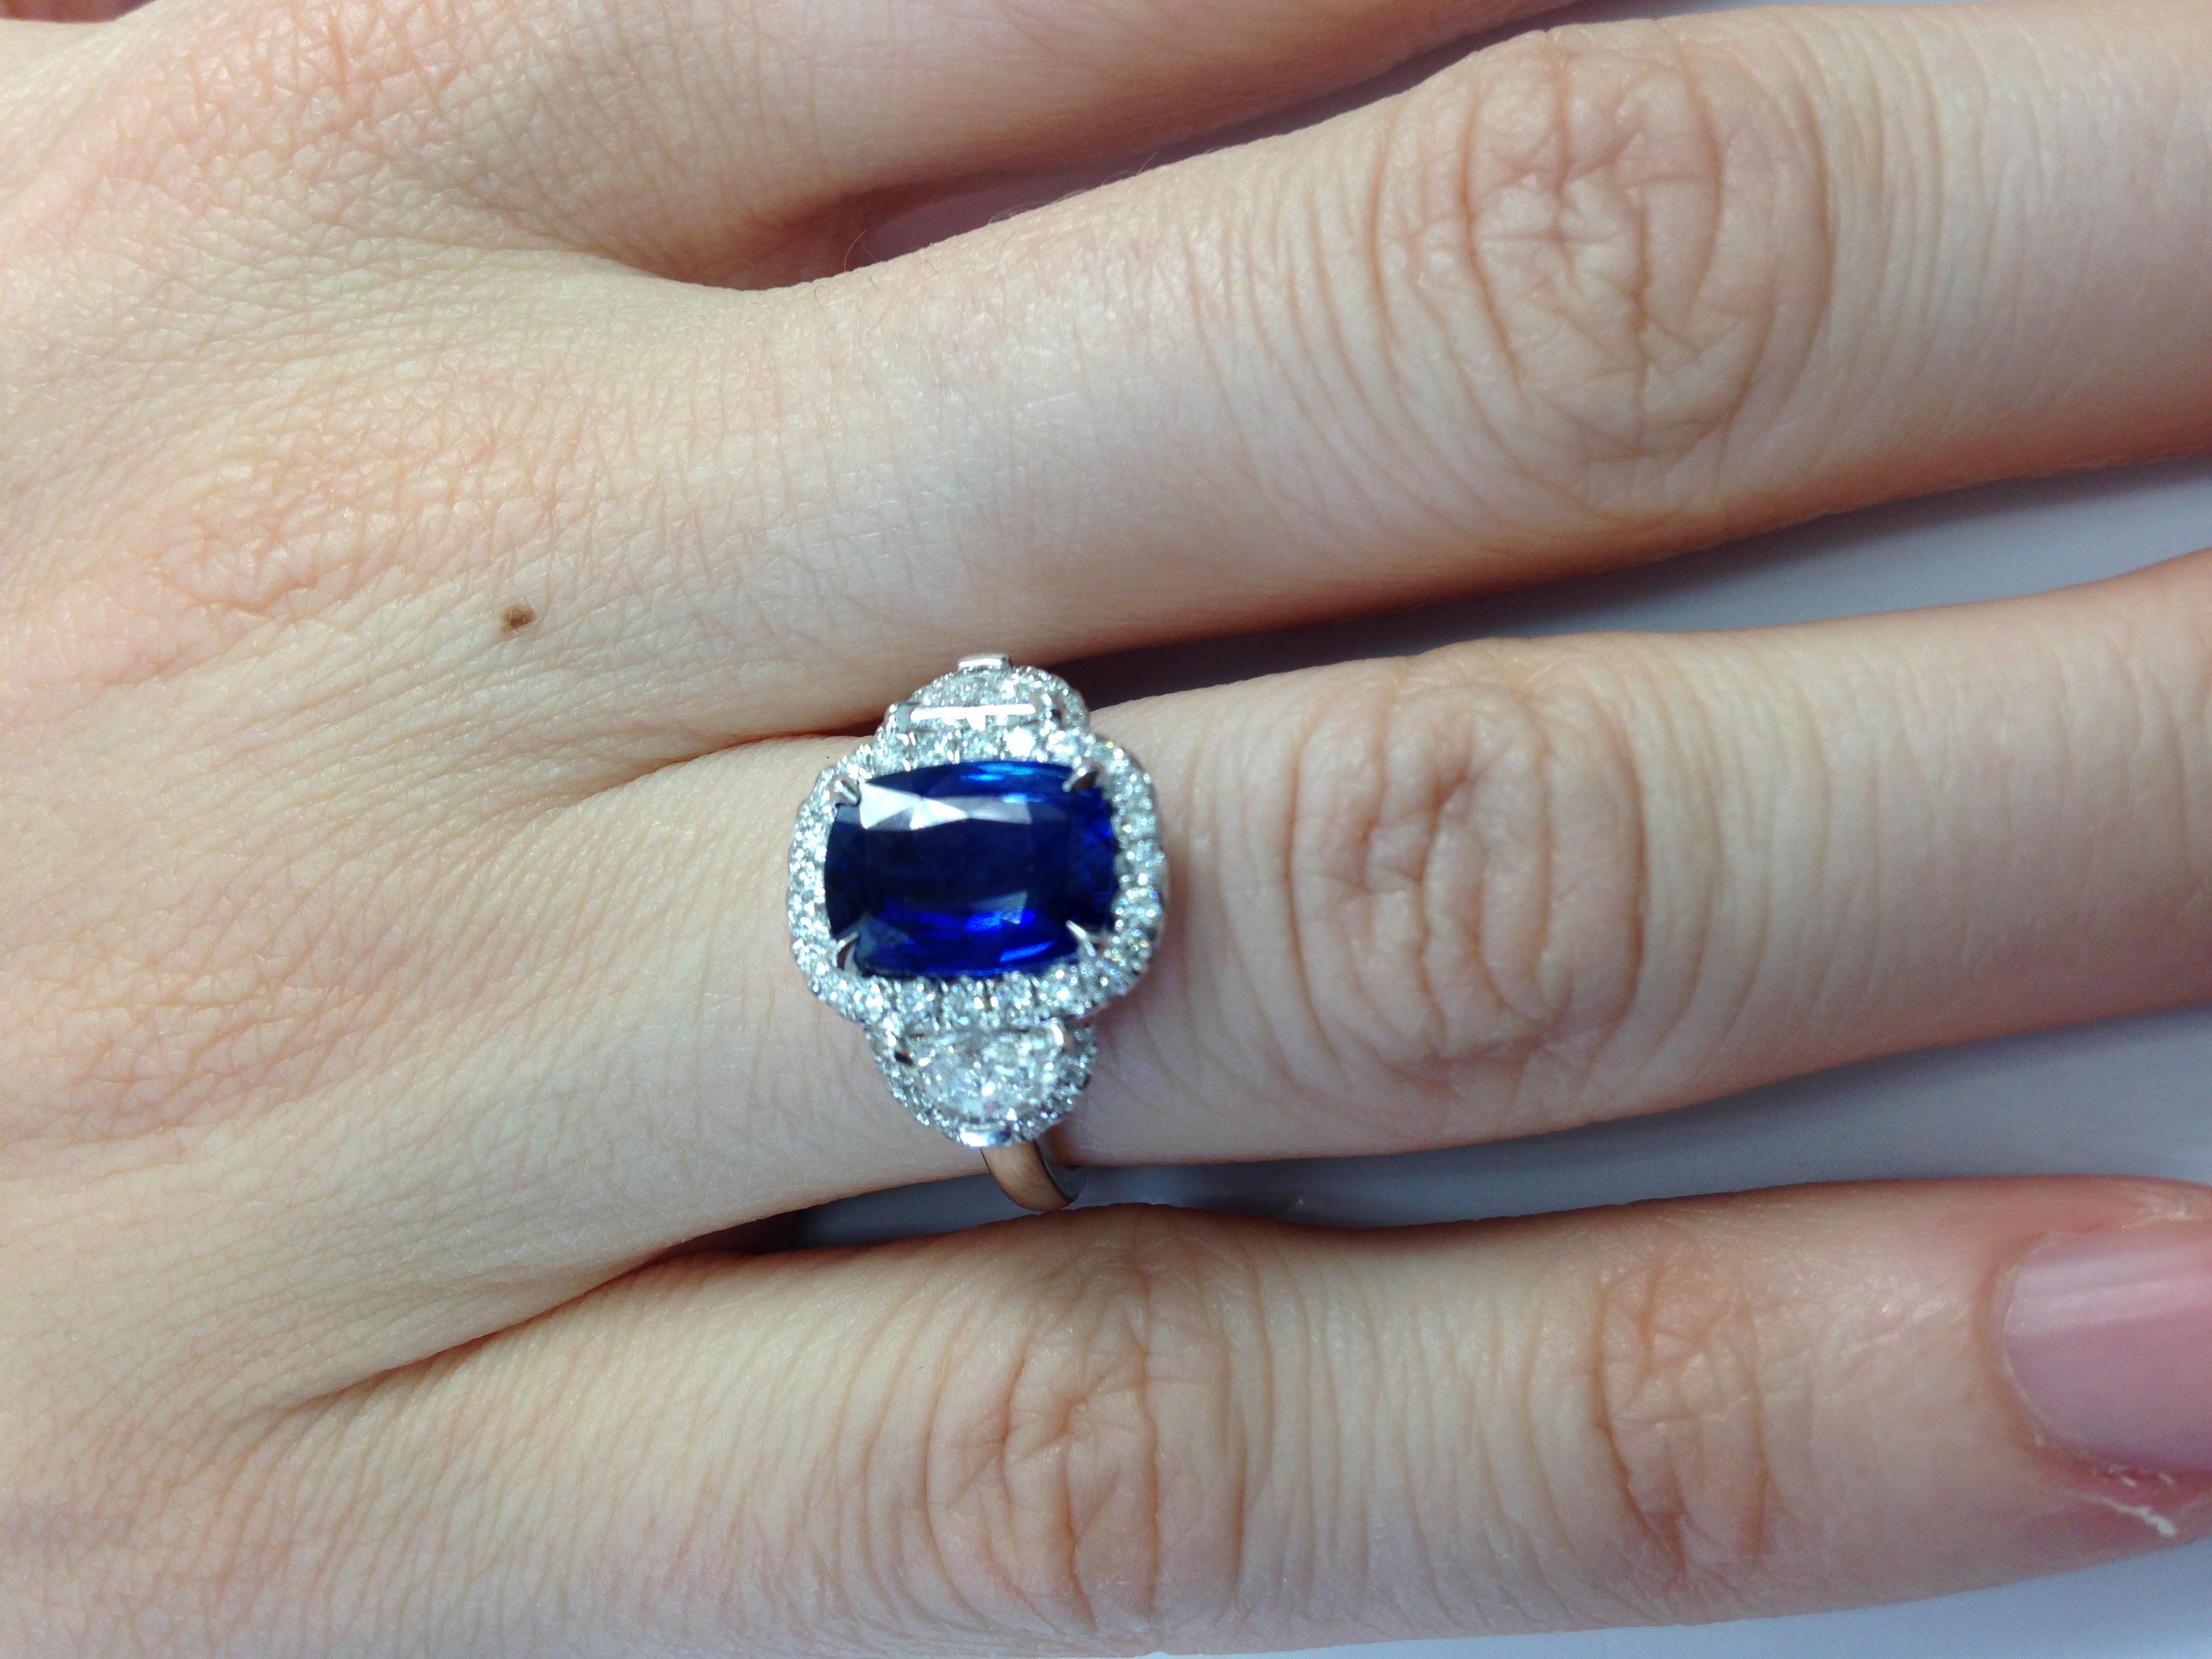 kamper ring gold rings baguette lily blue pav engagementring sapphire cube engagement diamond double stripe product